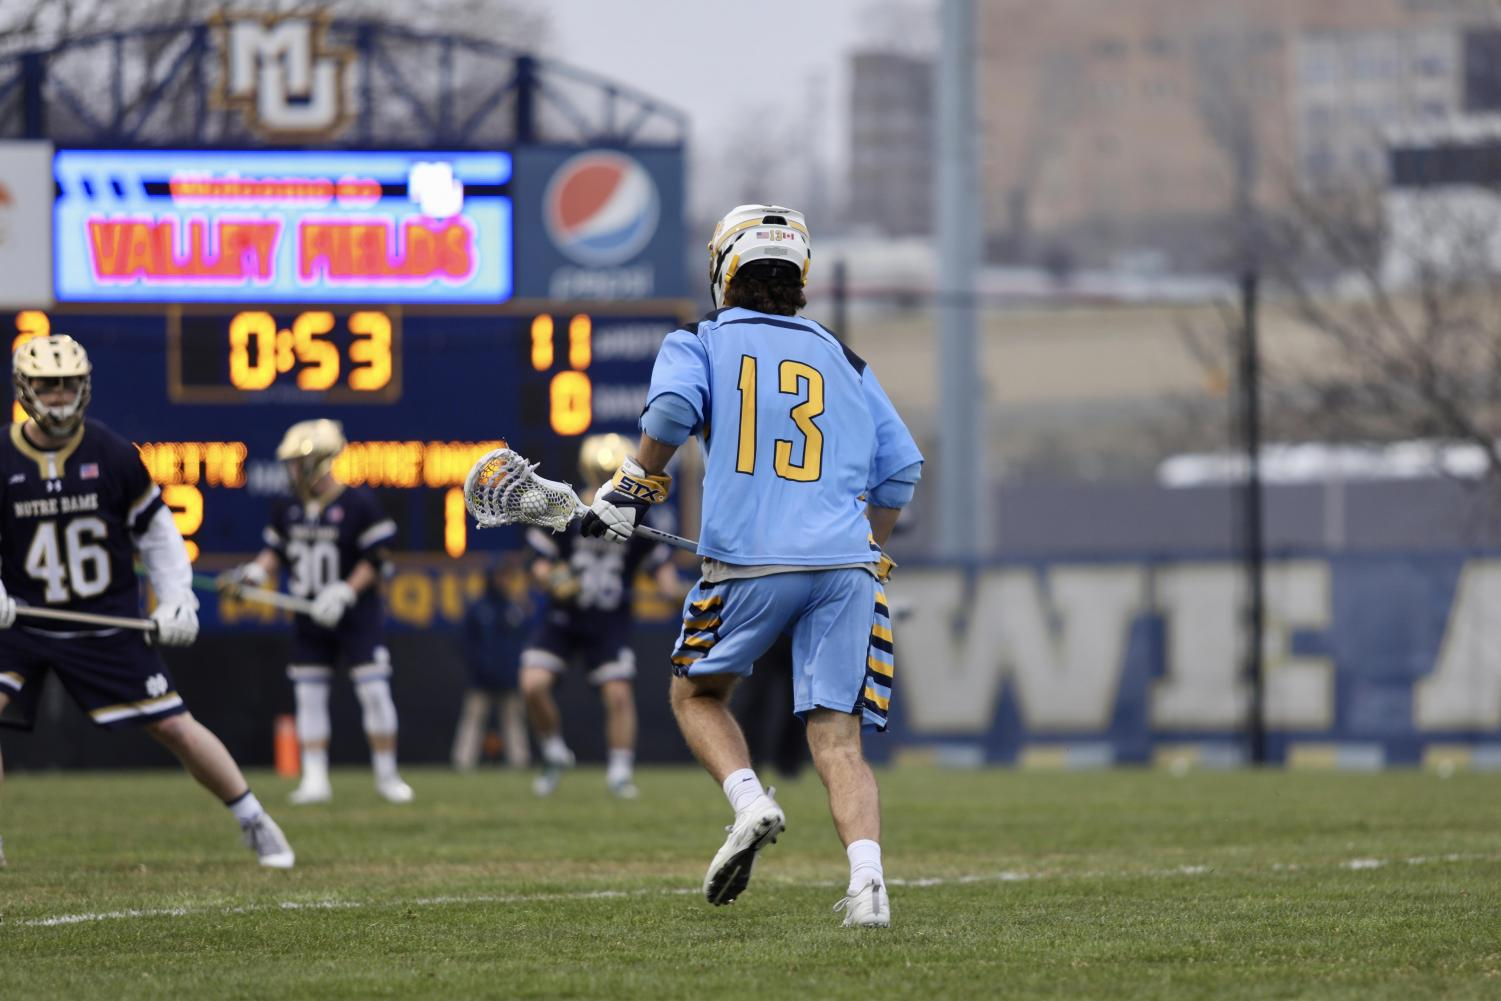 Connor McClelland is second on the team with 14 goals.